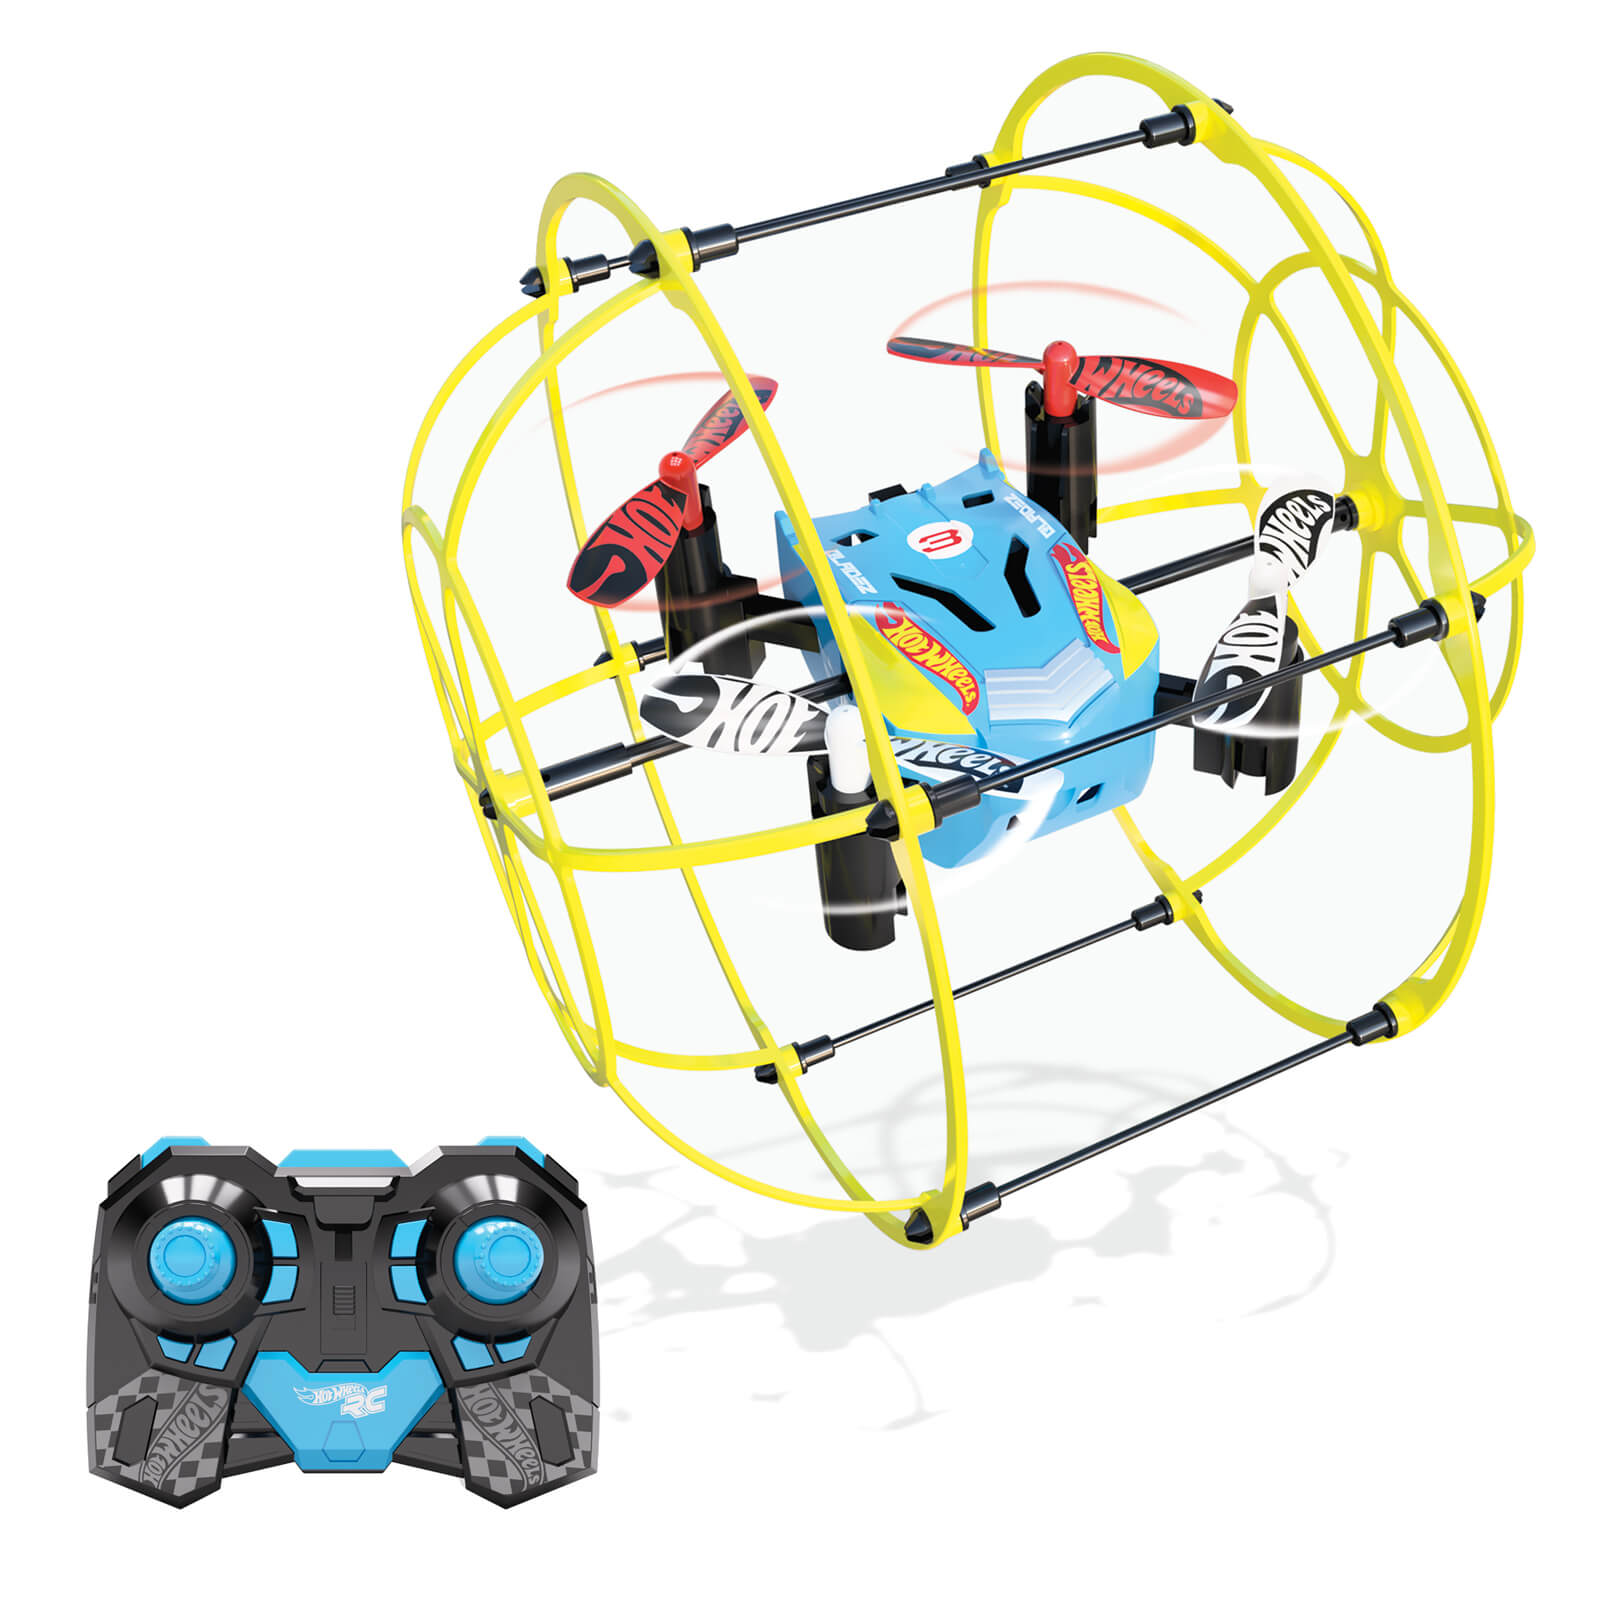 Hot Wheels DRX Cage Fighter Drone